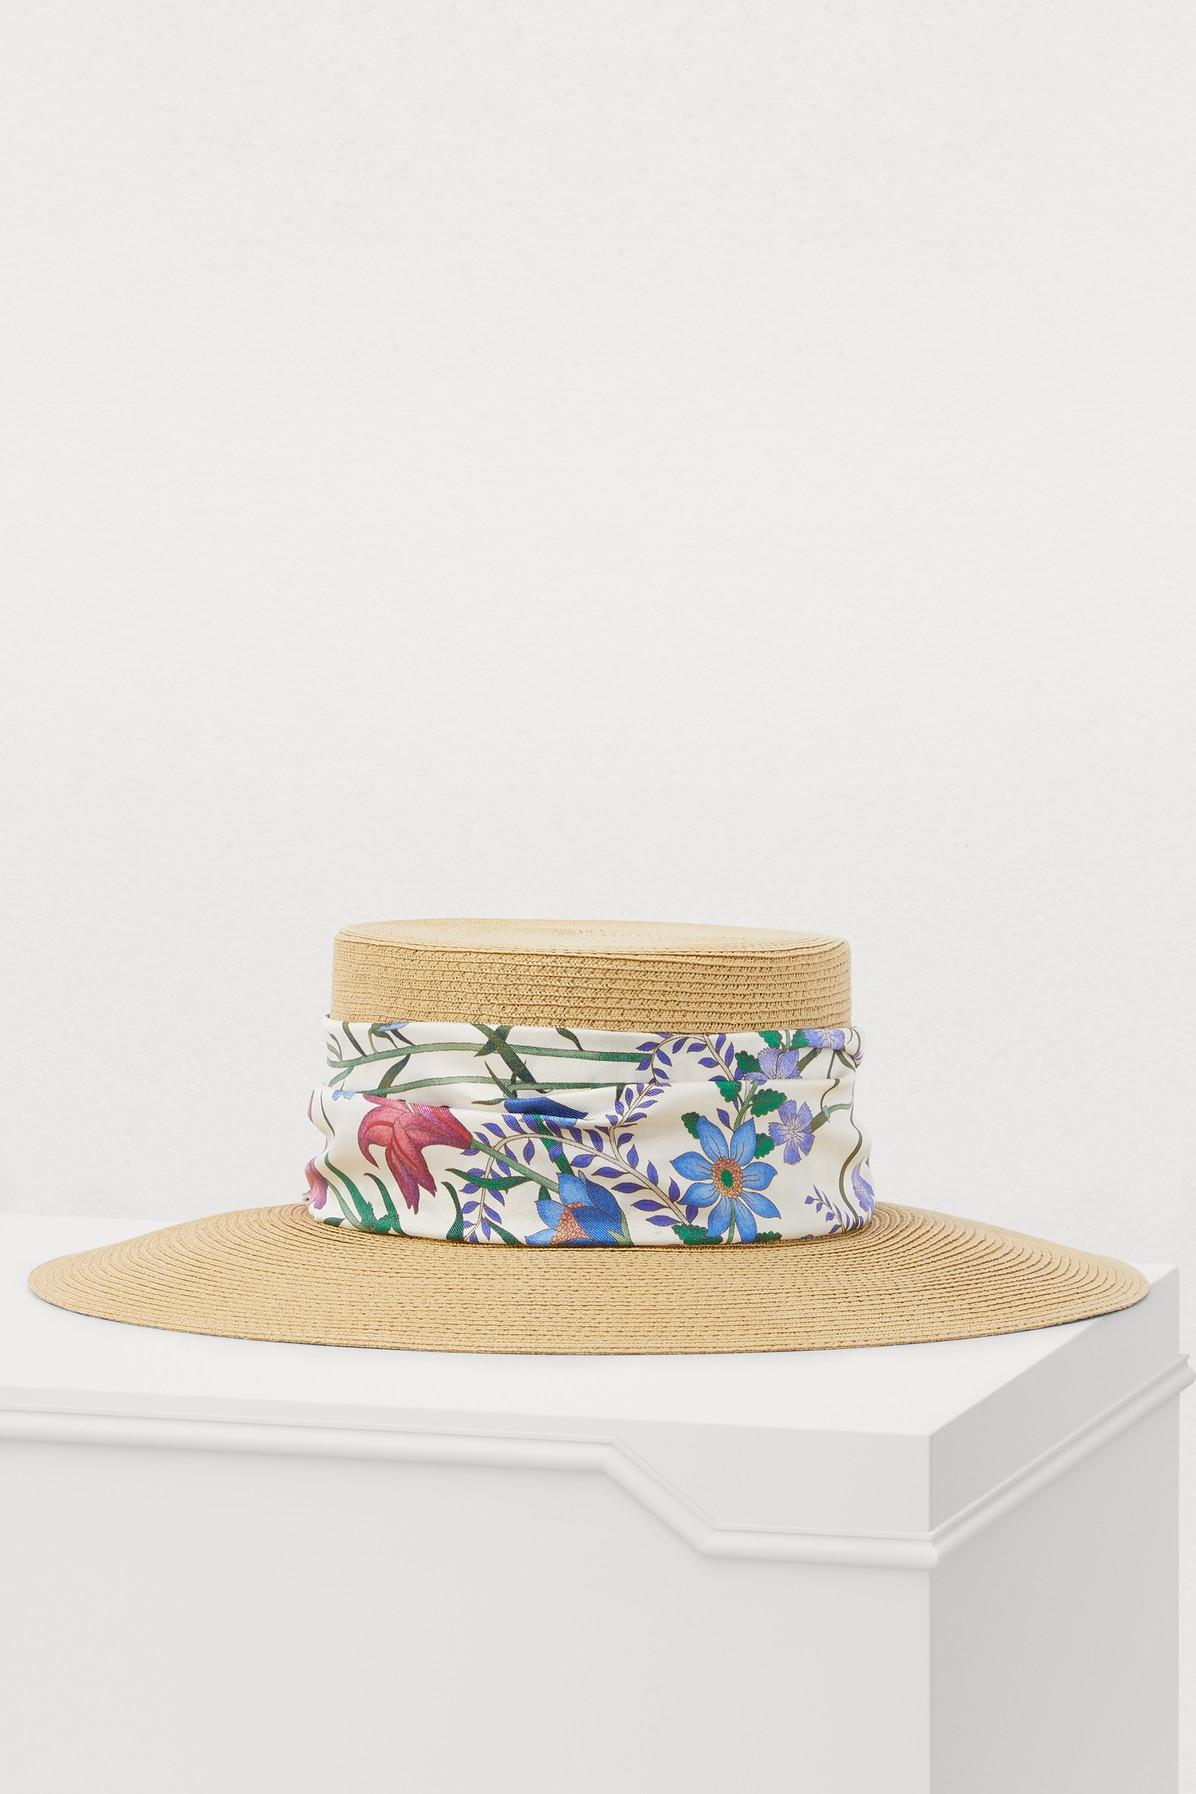 b5d4dadff23 Gucci. Women s White Flora Hat. £265 From 24 Sèvres